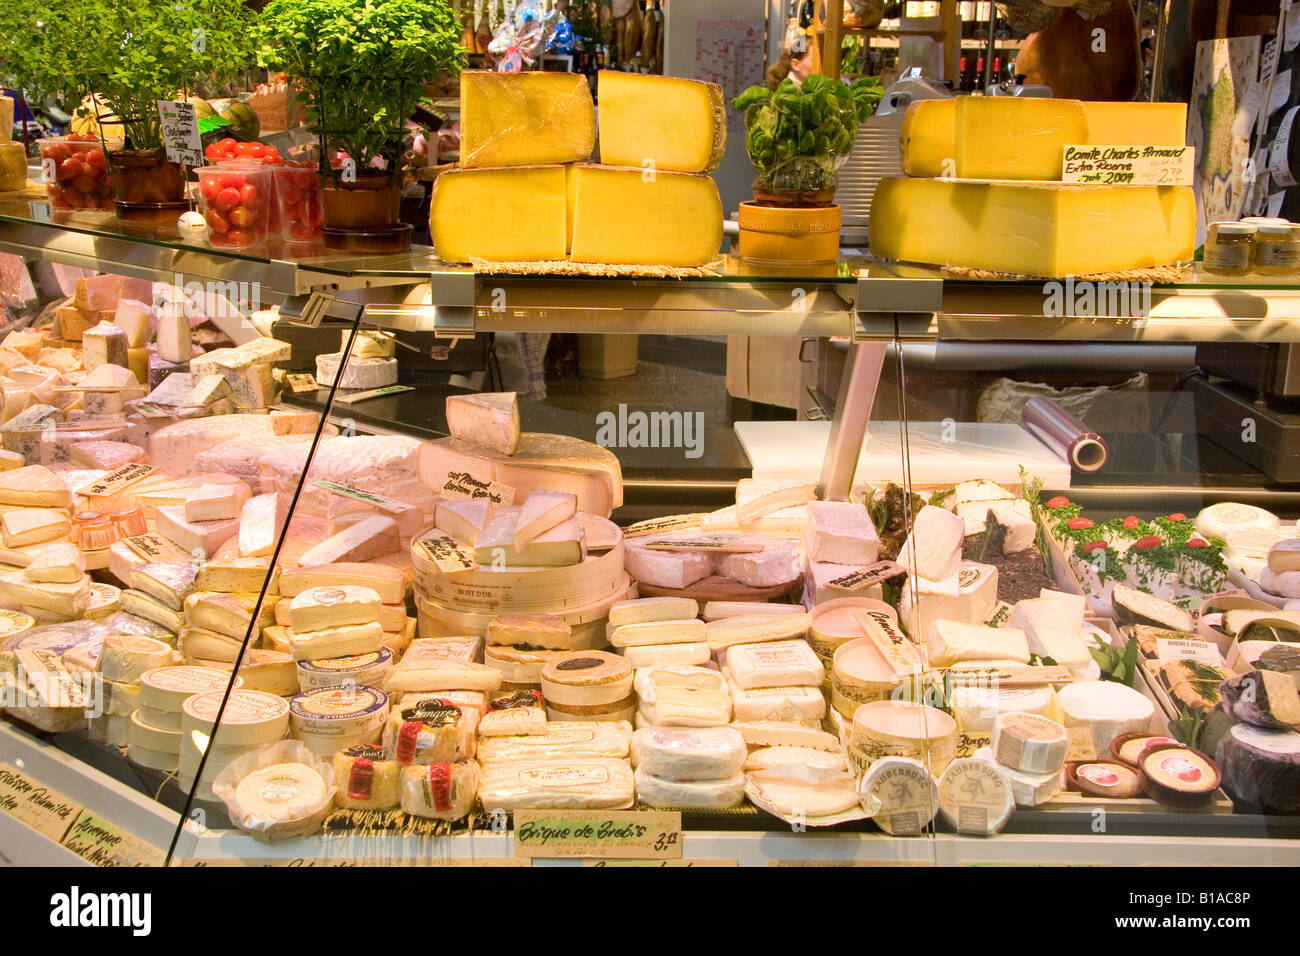 Cheeses on sale in an indoor market hall in Stuttgart, Germany. Numerous gourmet cheeses are offered. - Stock Image